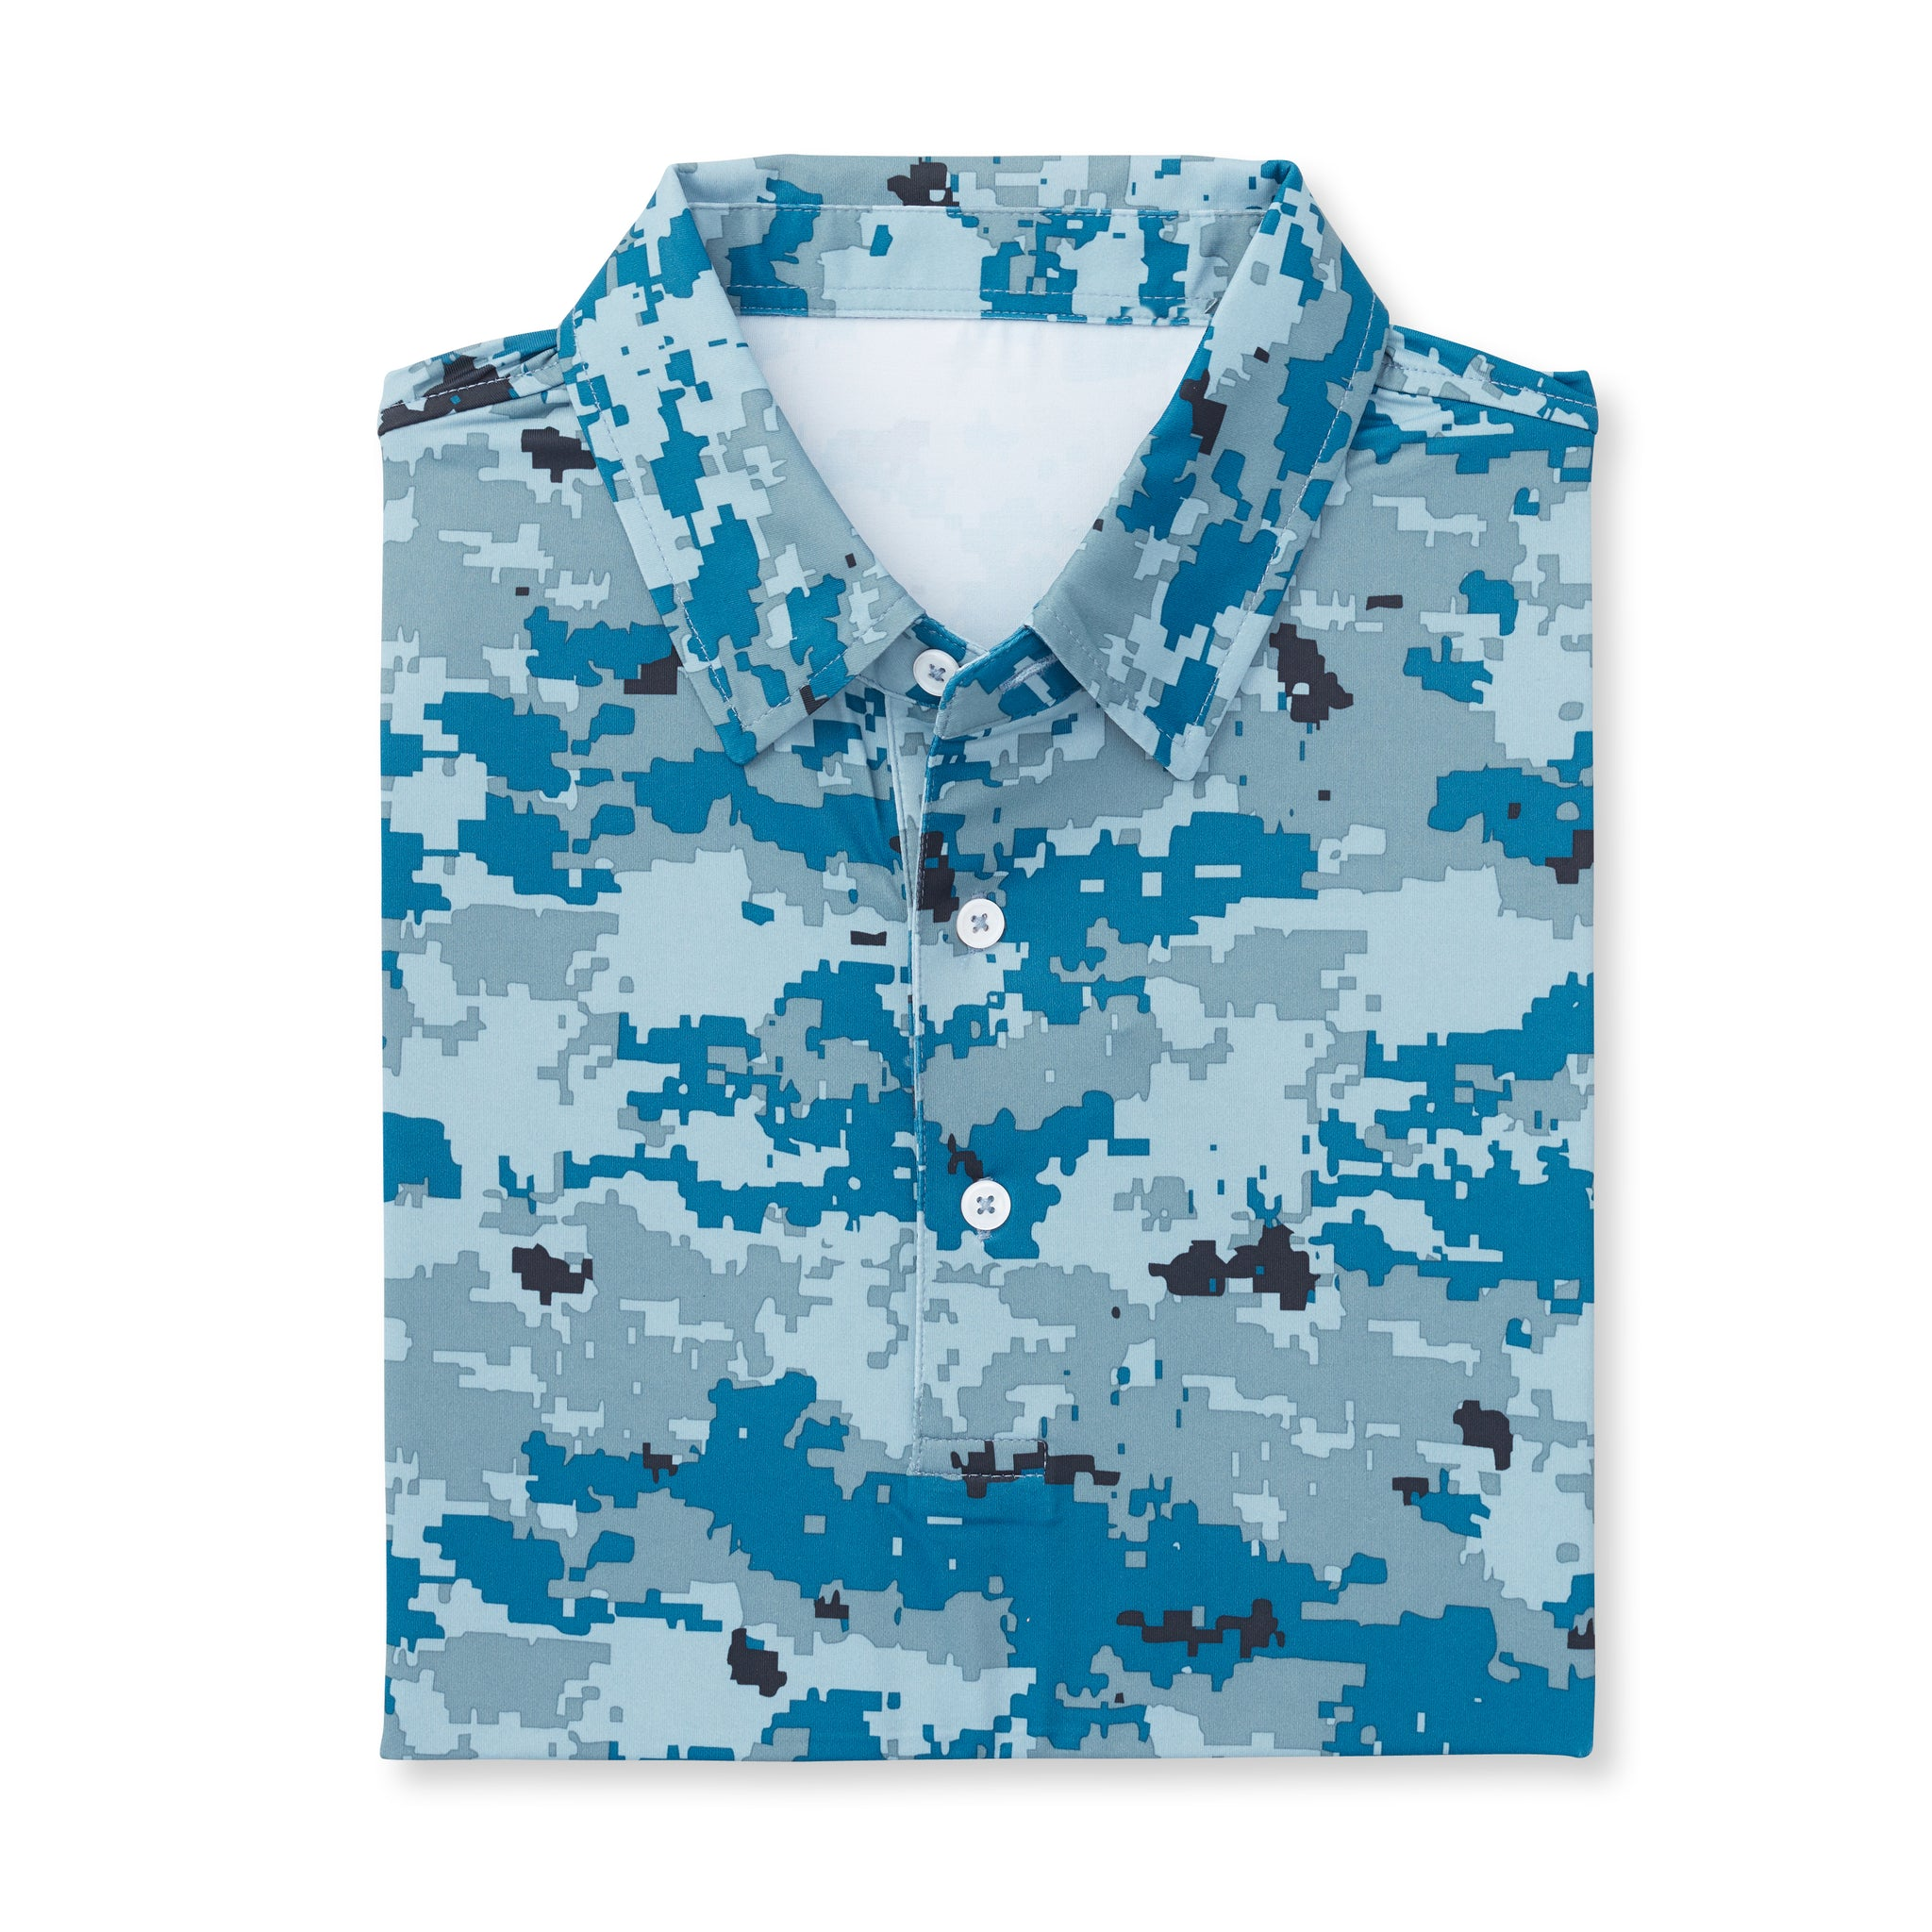 Digital Camo Short Sleeve - Sea & Air IS46002